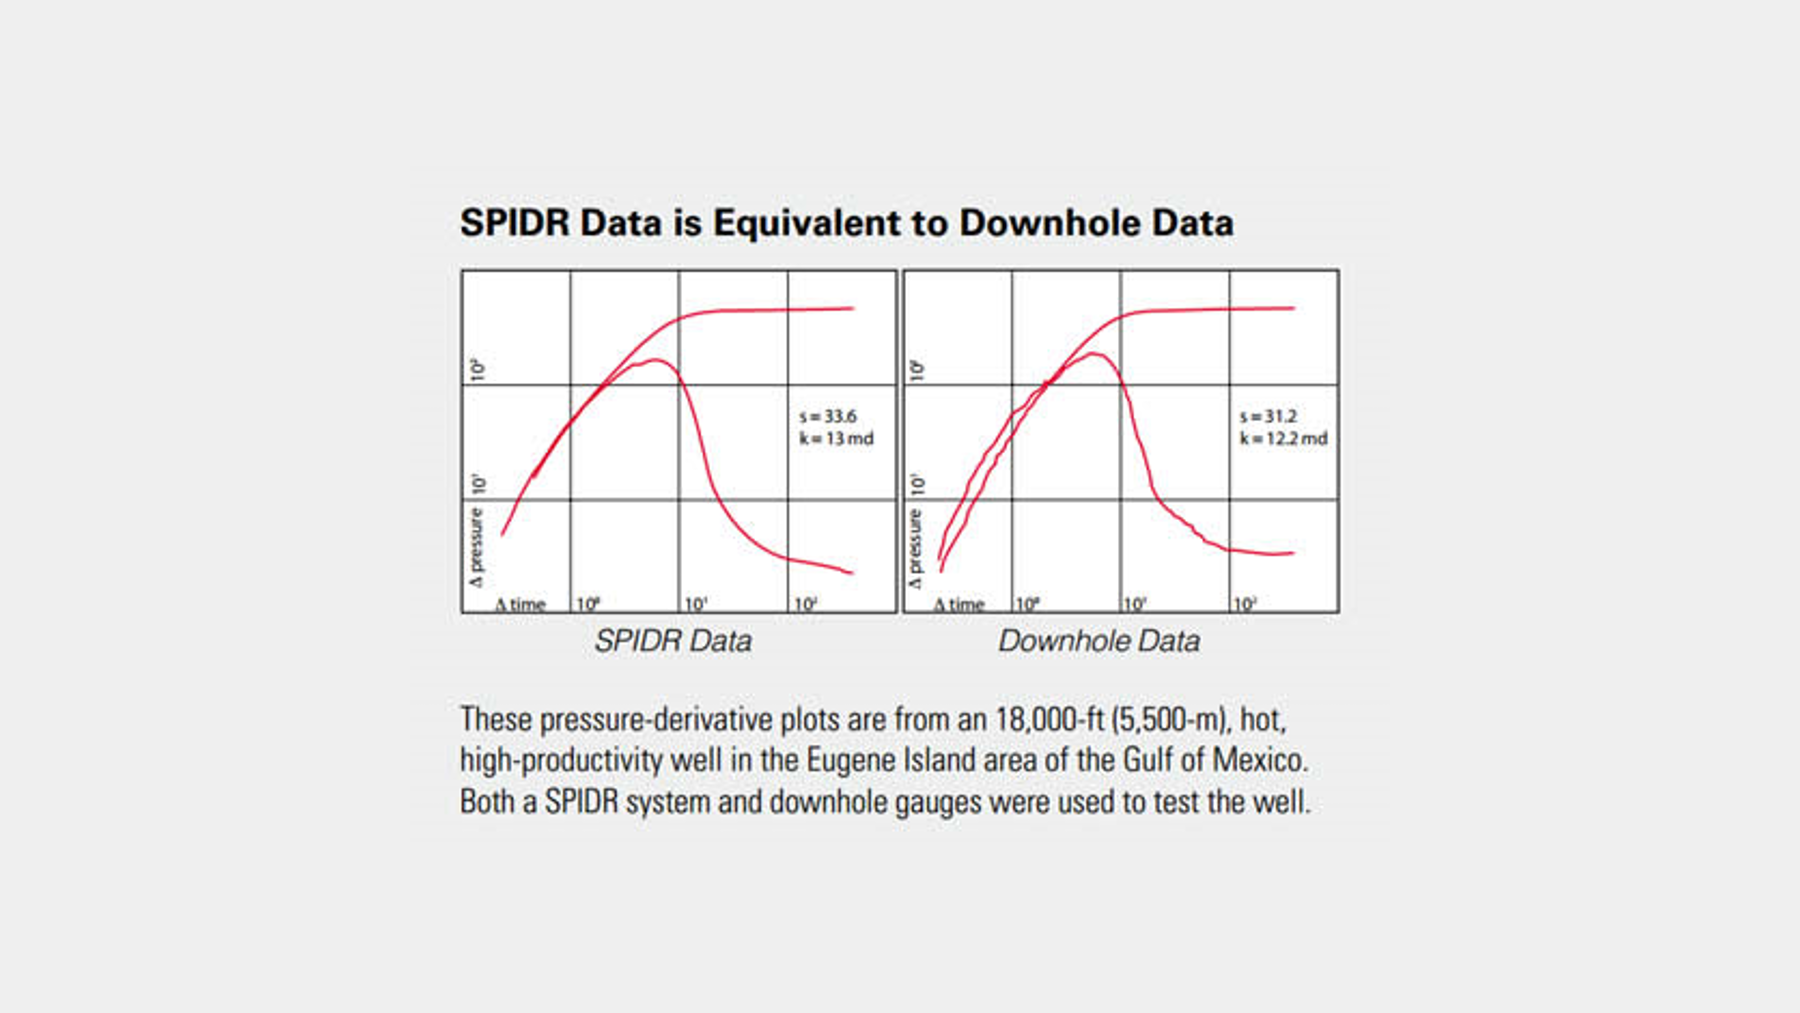 SPIDR Data is equivalent to Downhole Data